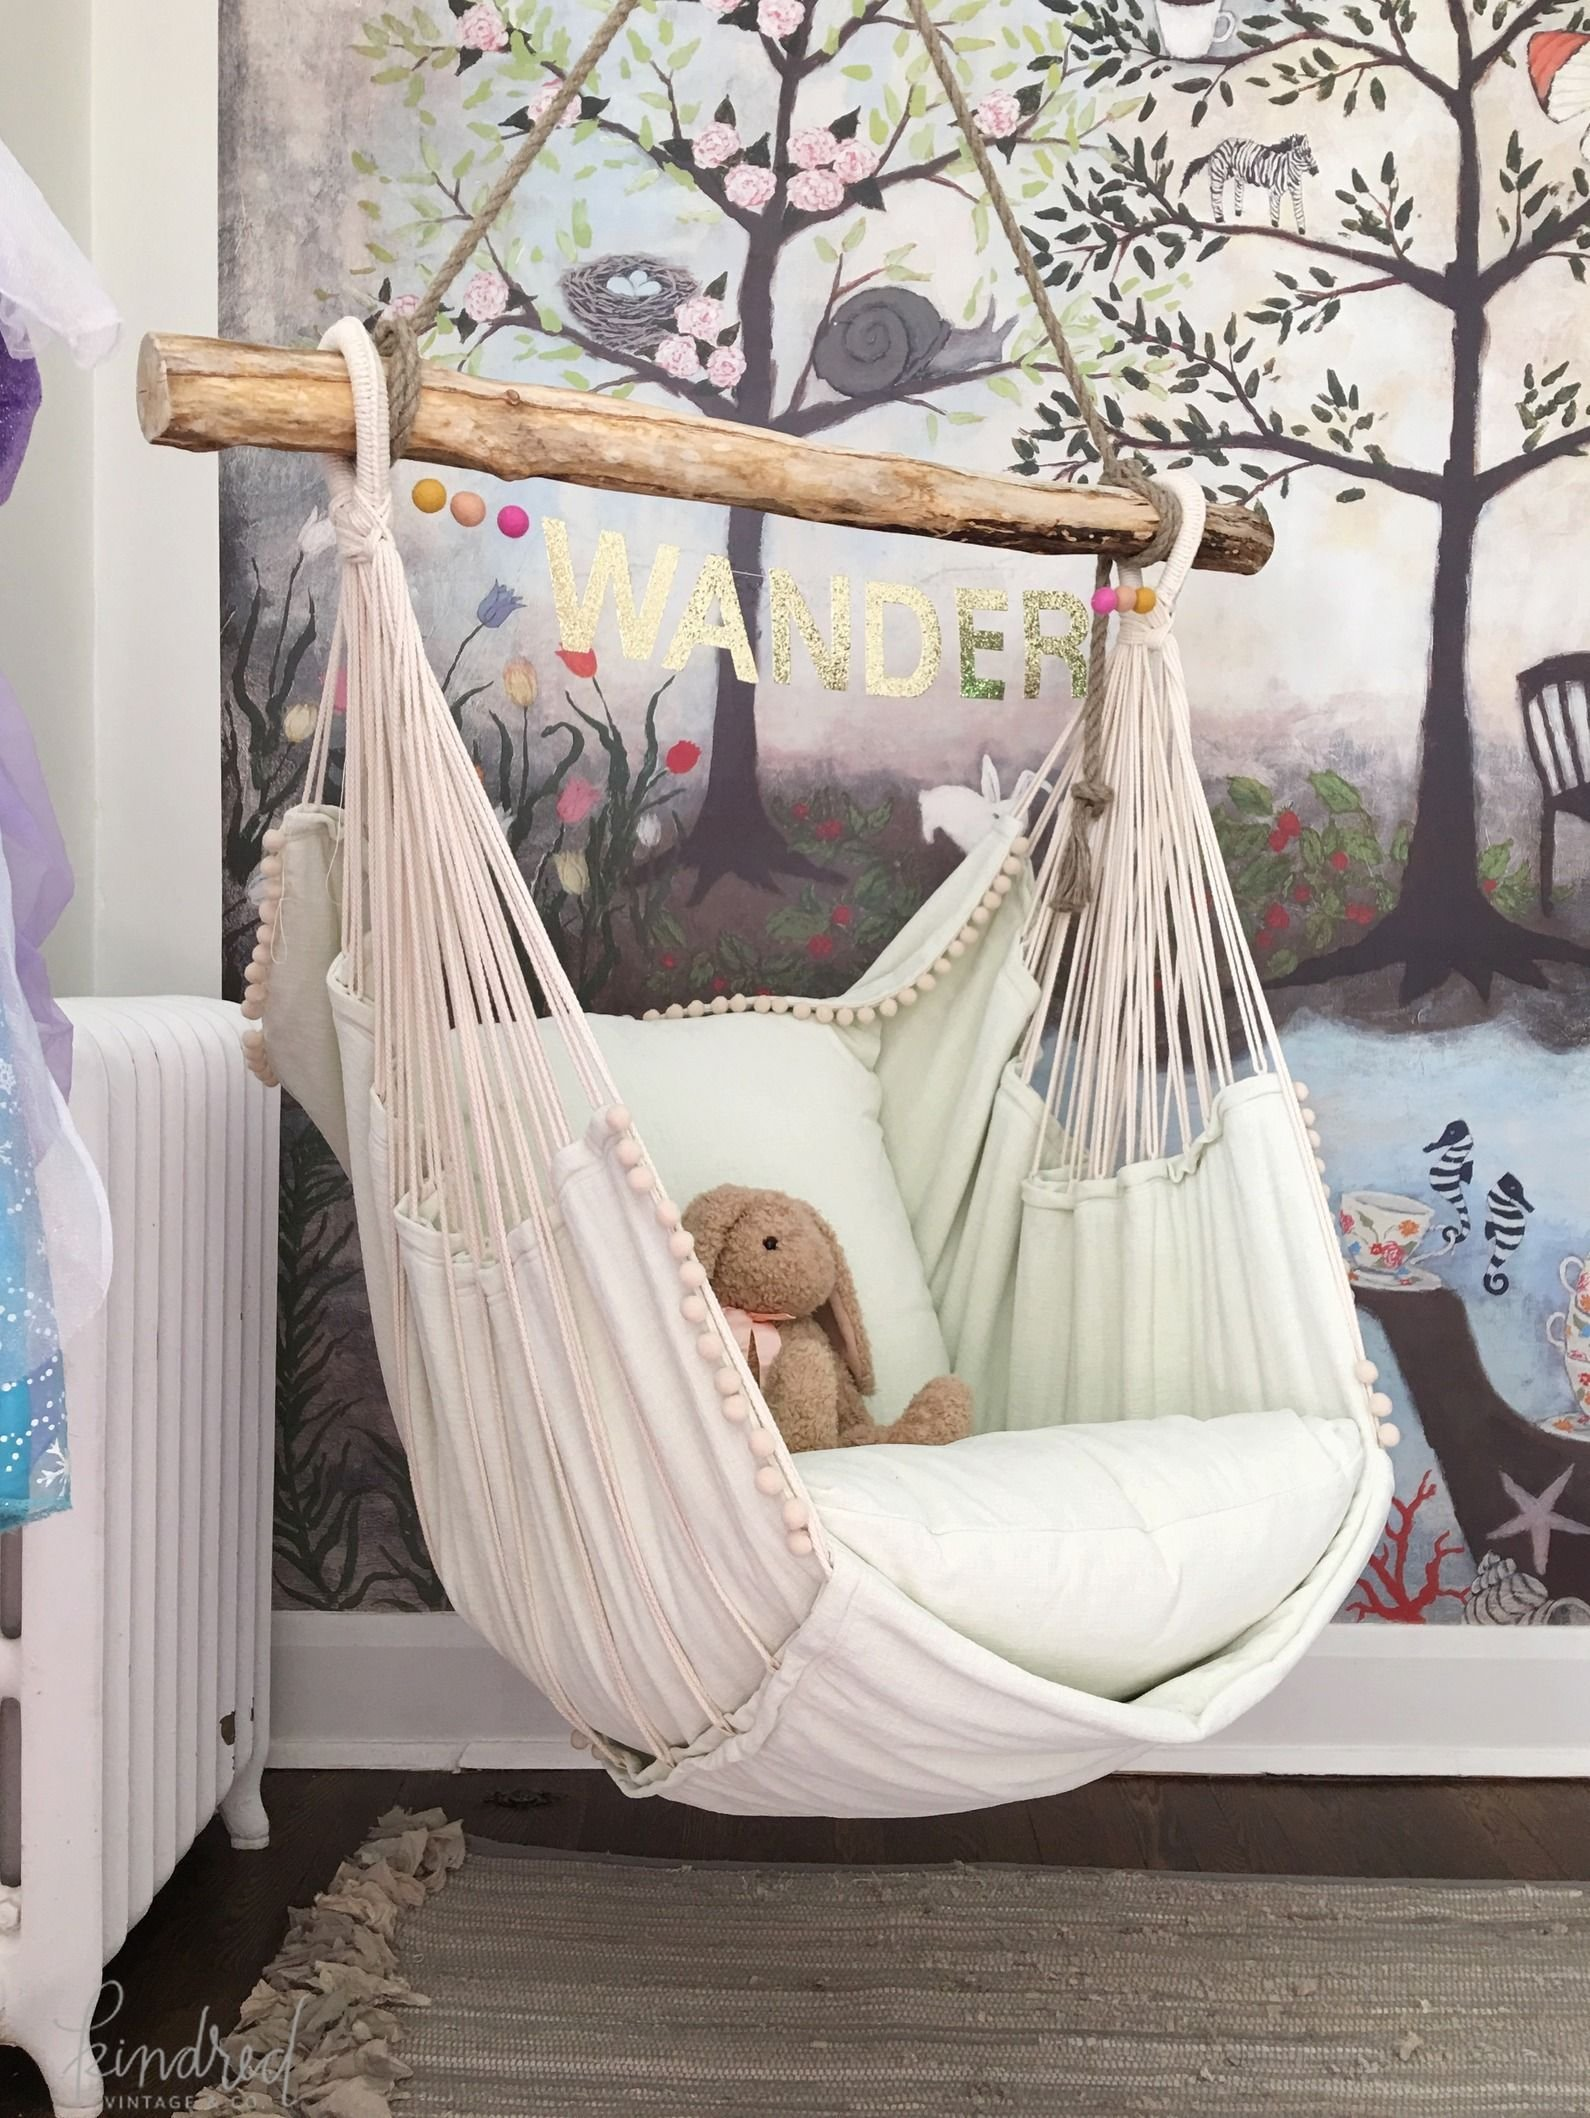 Best Kindredvintage Co Summer Tour Rustic Decorating Ideas Pinterest Summer Room And Bedrooms With Pictures